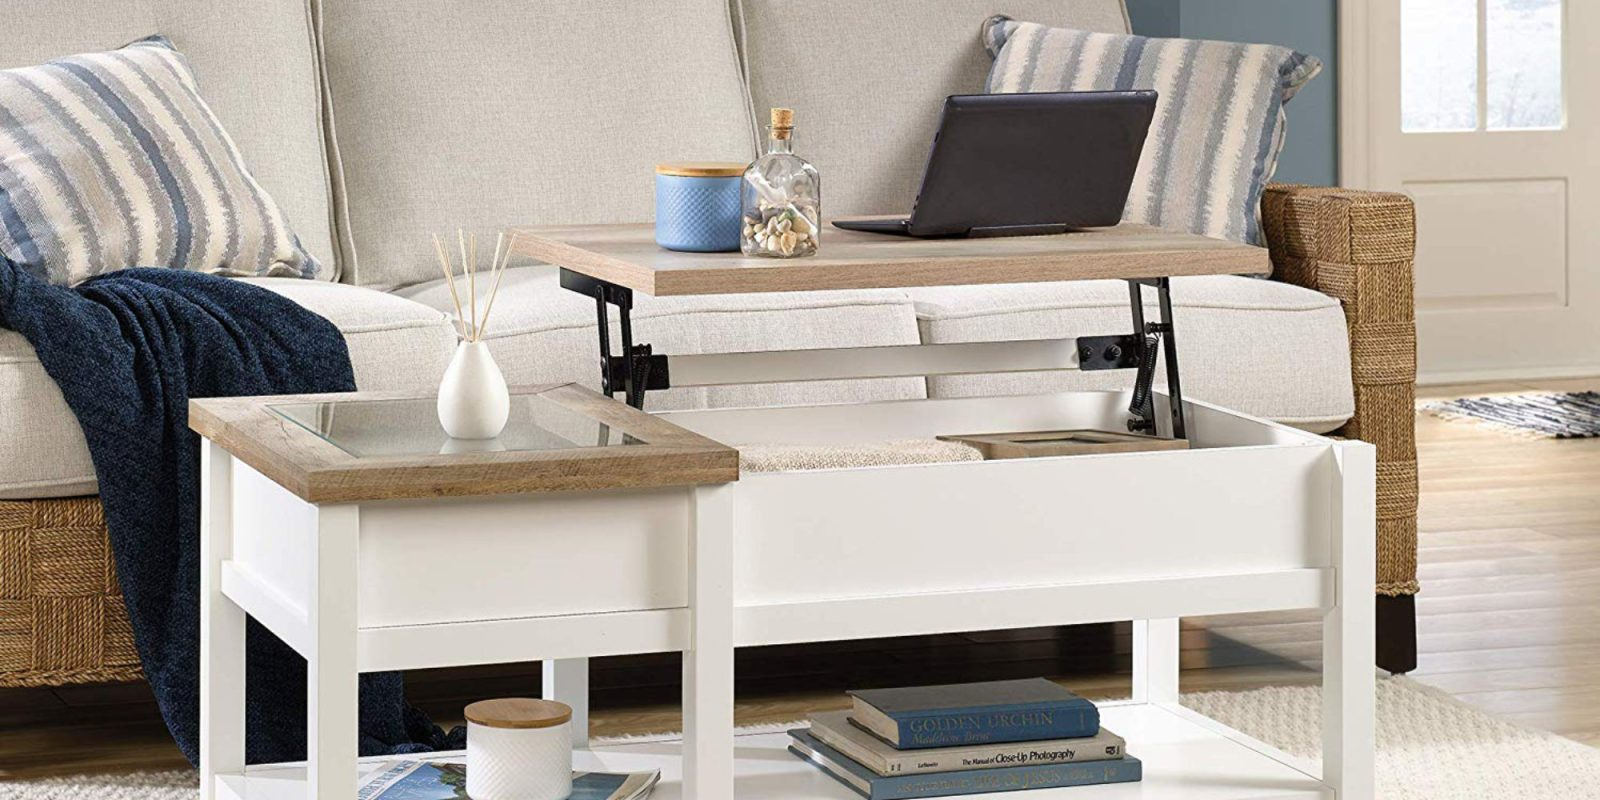 Work from the couch with Sauder's Lift-top Coffee Table: $118 (Save 25%)